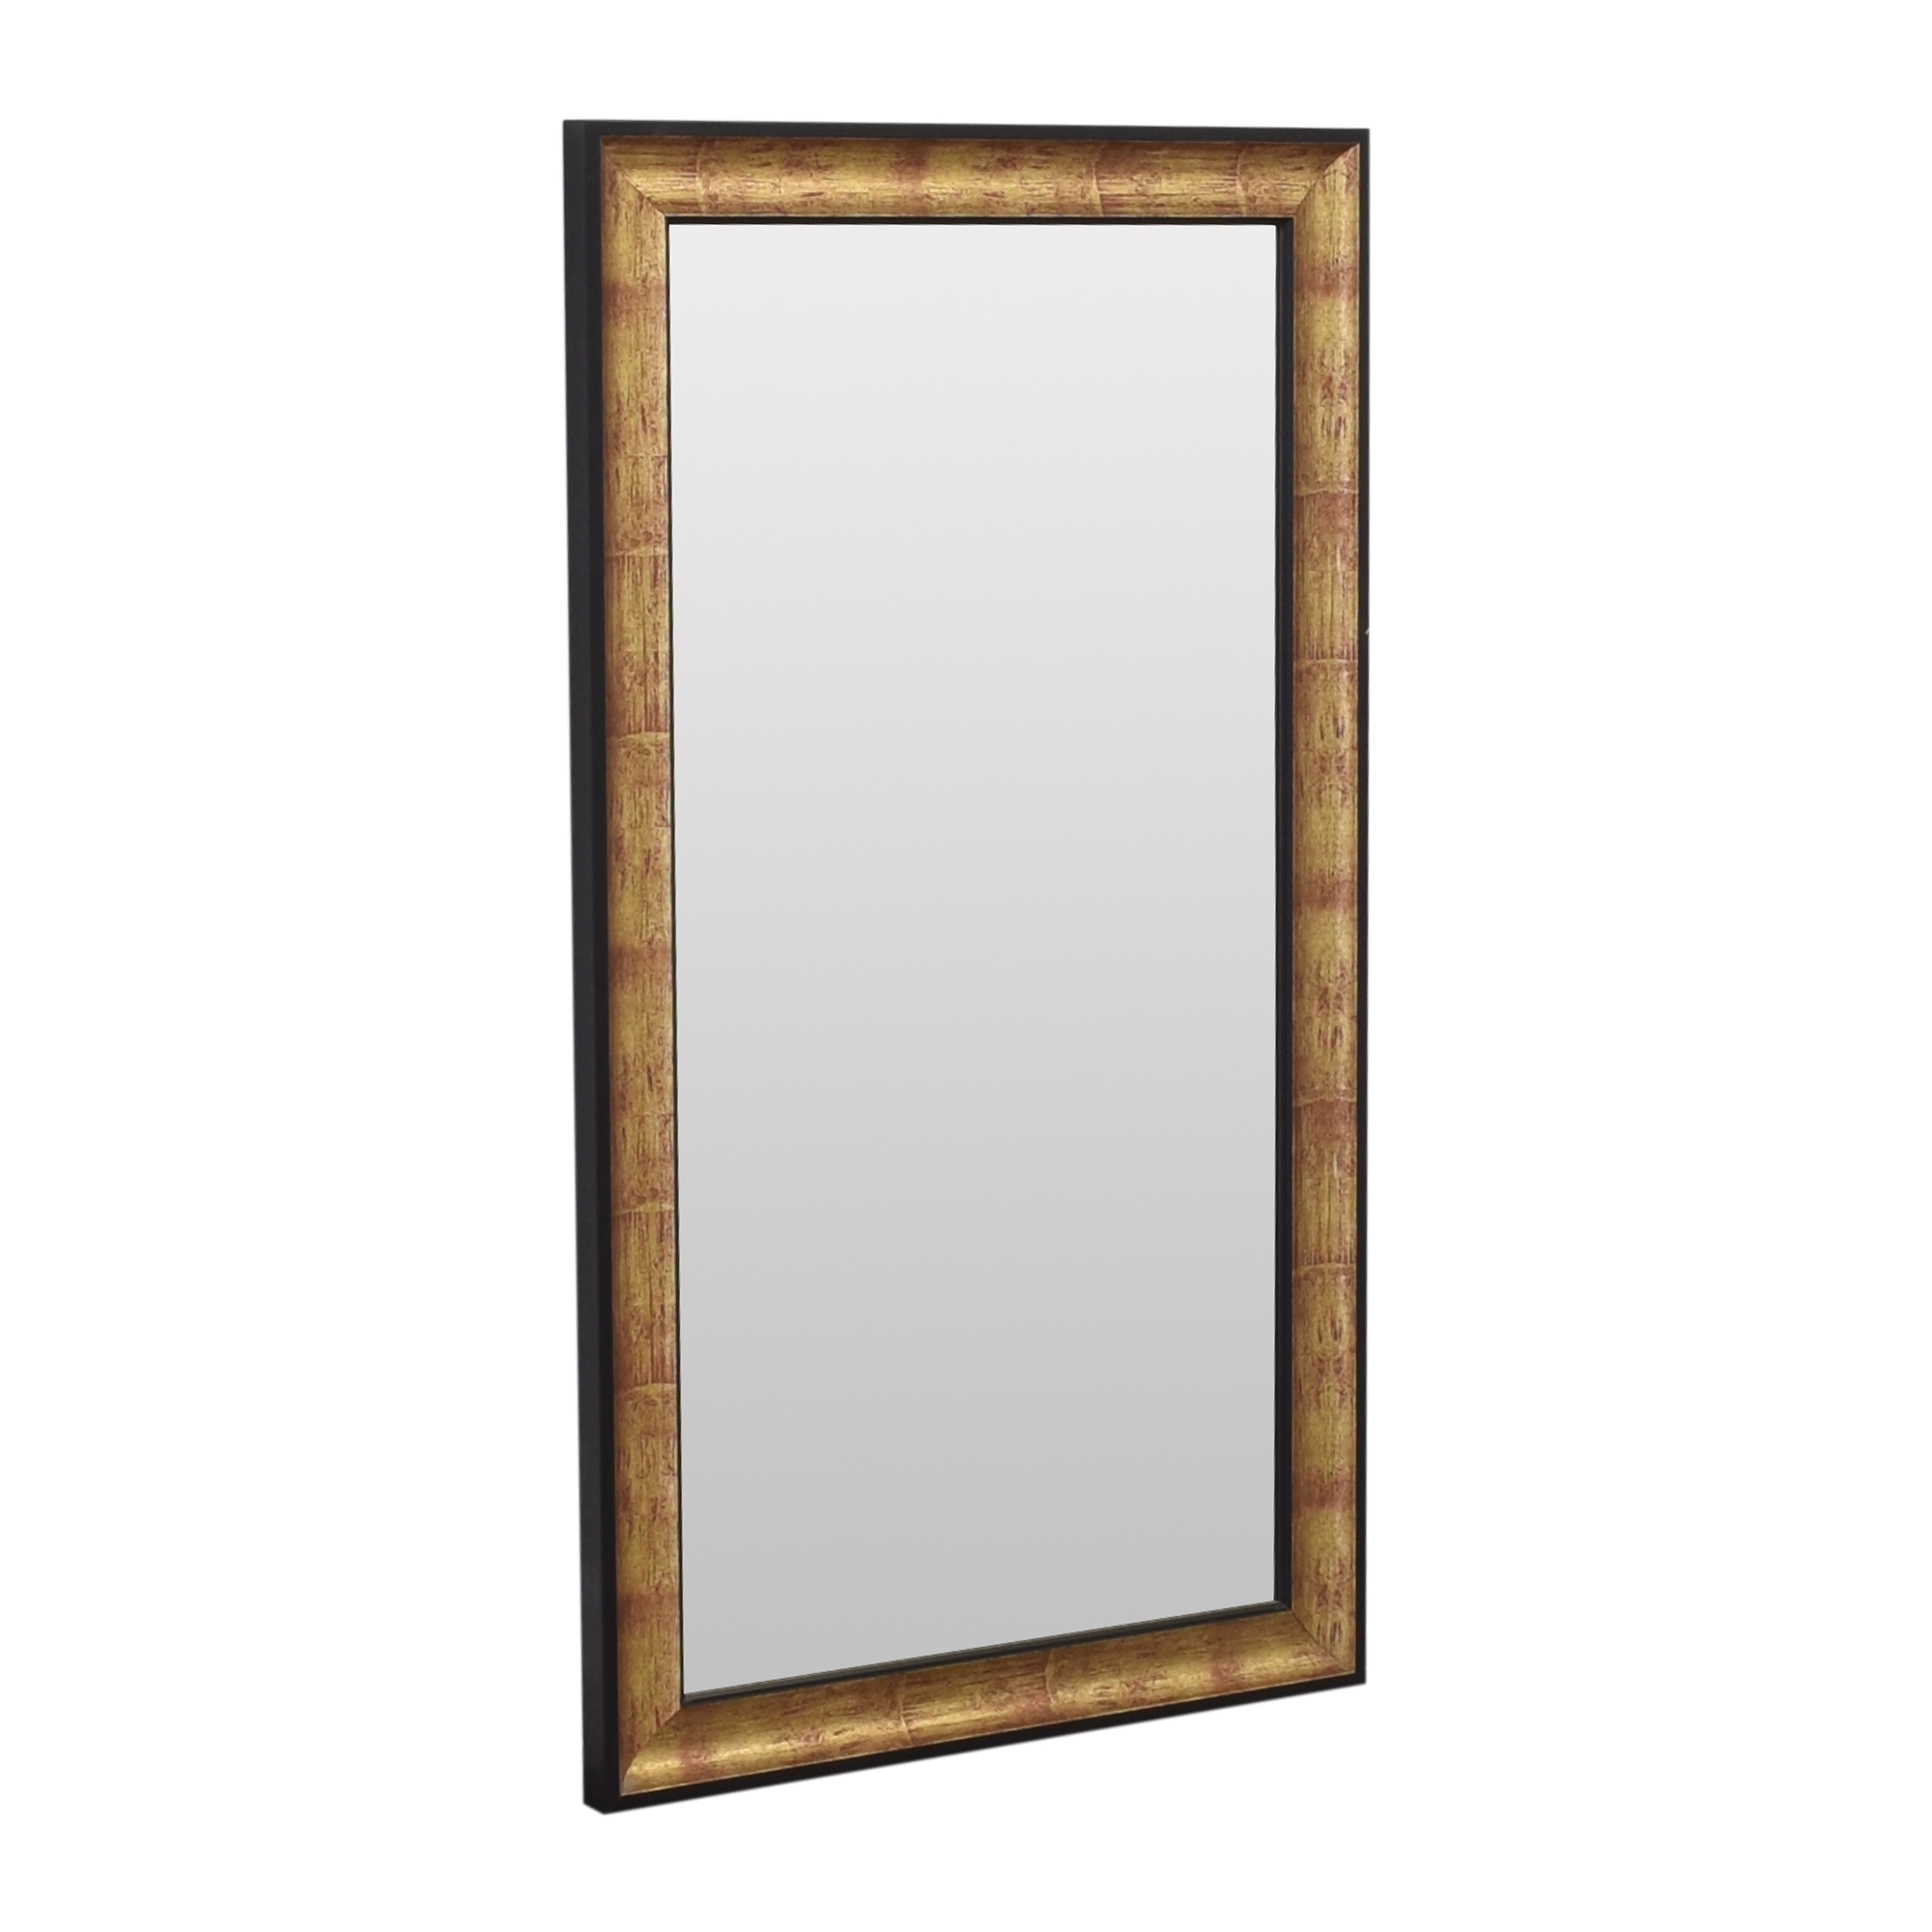 shop John-Richard Framed Wall Mirror John-Richard